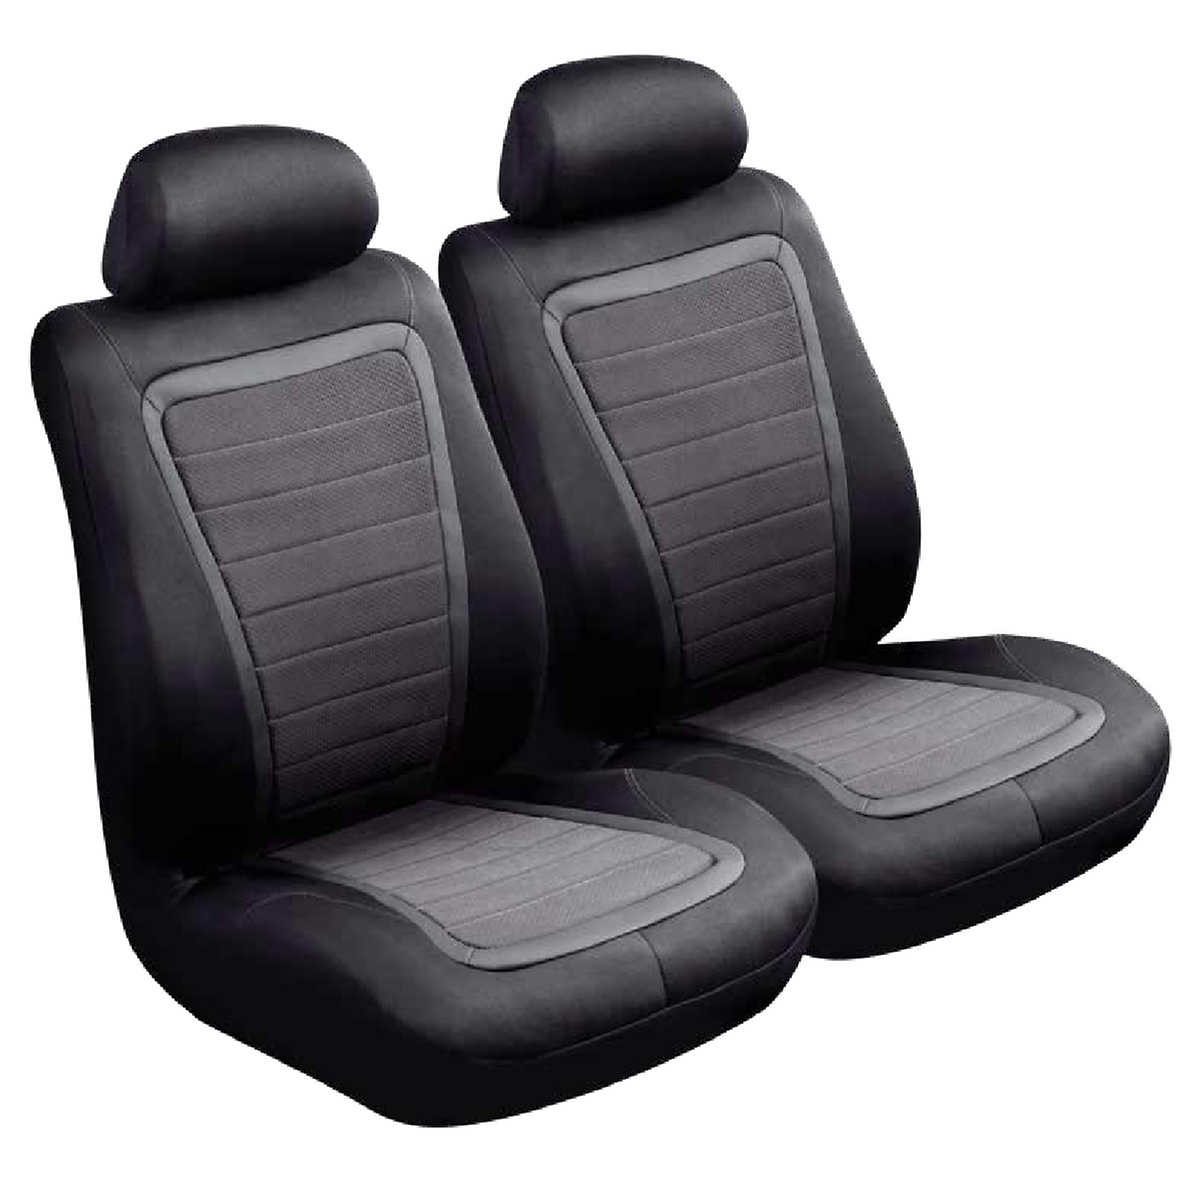 Weathertech floor mats nissan pathfinder - Dri Lock Wet Suit Seat Cover Pair